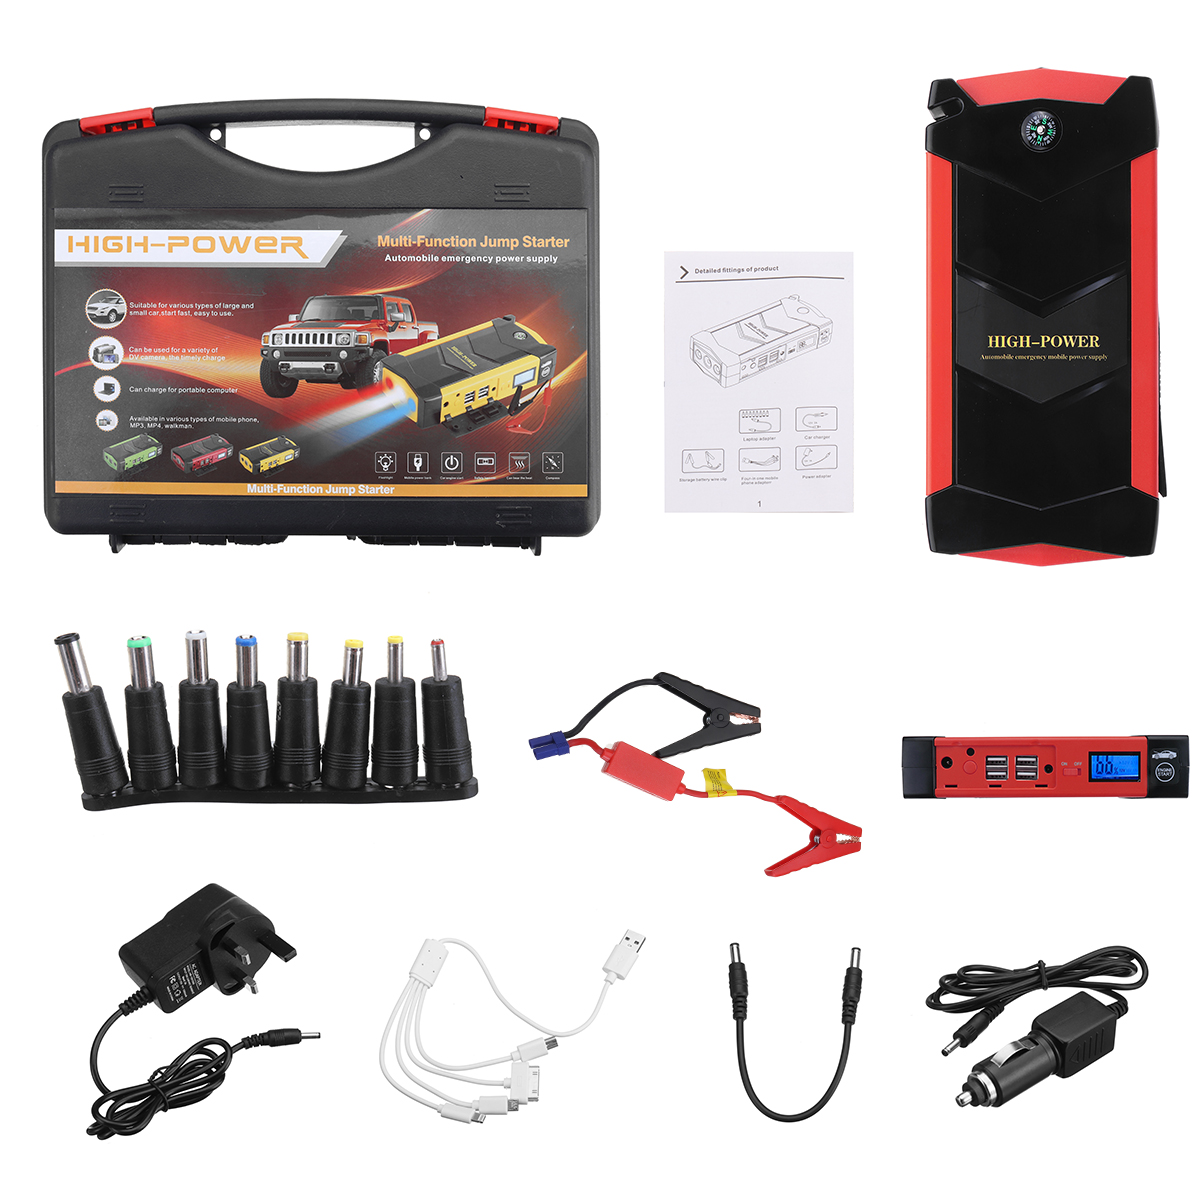 12V 82800mAh Car Jump Starter Booster Power Bank 4USB Car Battery Charger Starting Tool Kit For Car Starting Device 12v mini portable 82800mah led car jump starter engine auto emergency starting device power bank car phone charger with 4usb